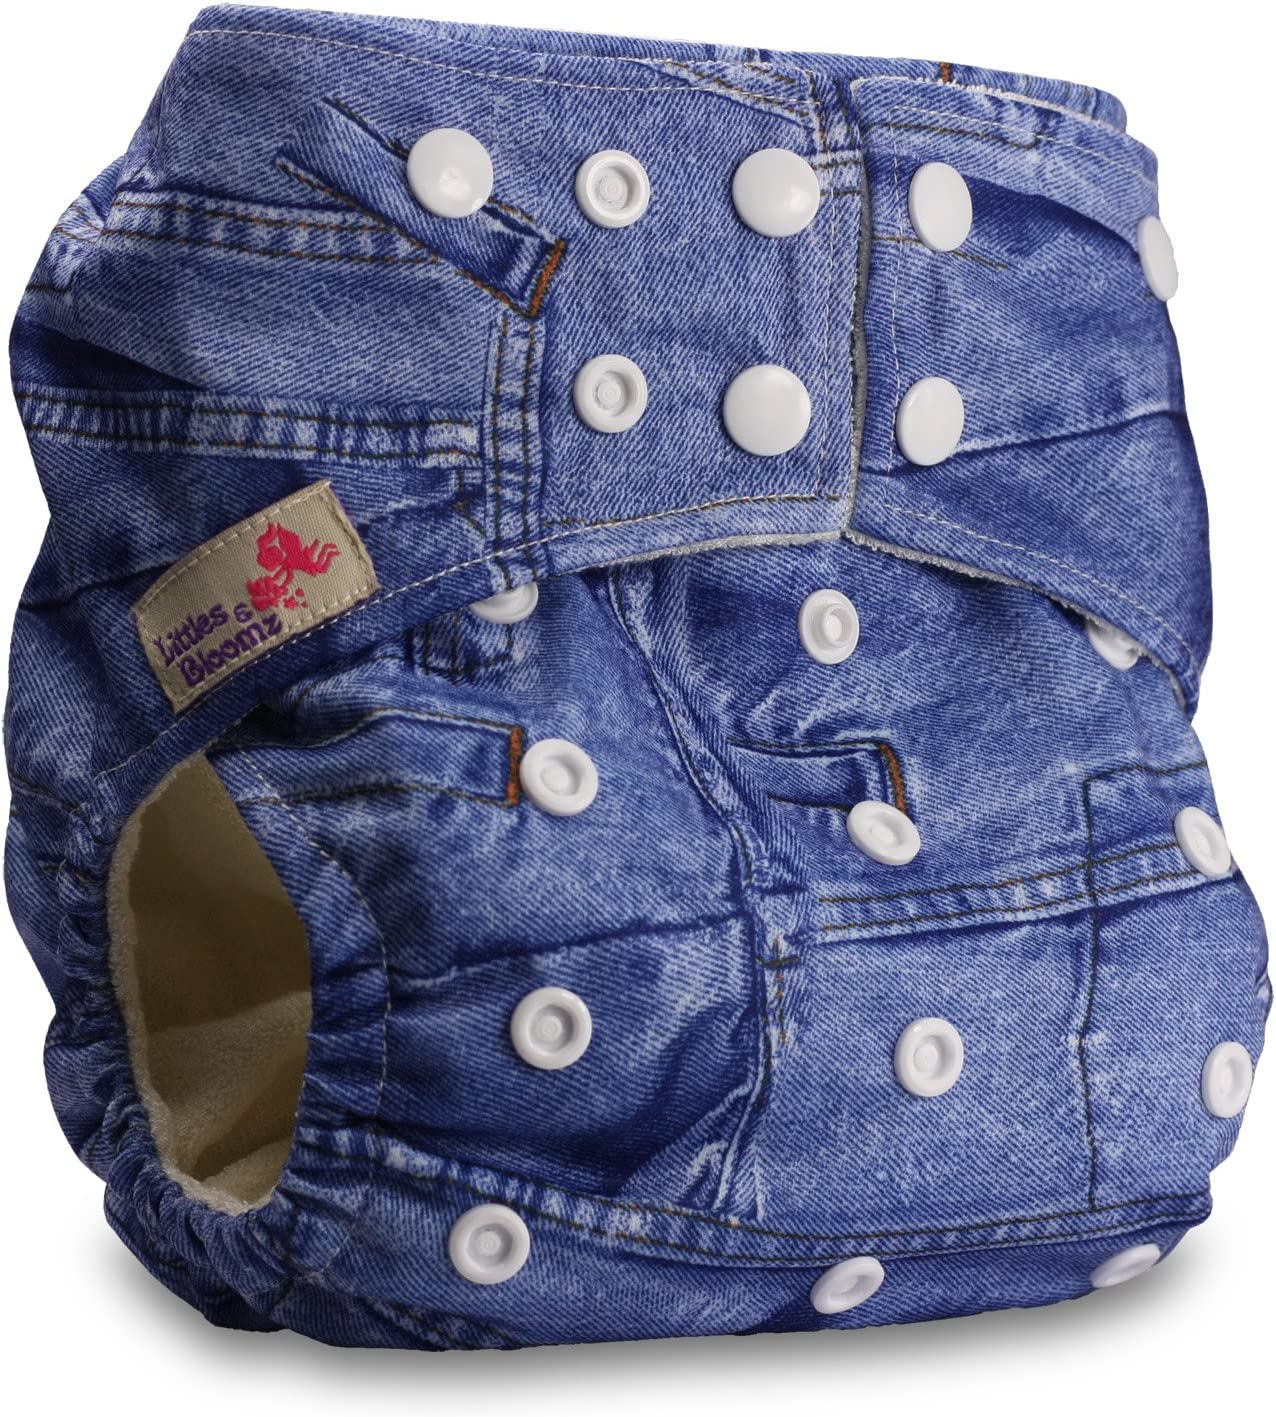 Fastener: Popper Littles /& Bloomz Baby Cloth Washable Reusable Nappy Pocket Diaper Bamboo Pattern 1 with 1 Bamboo Insert